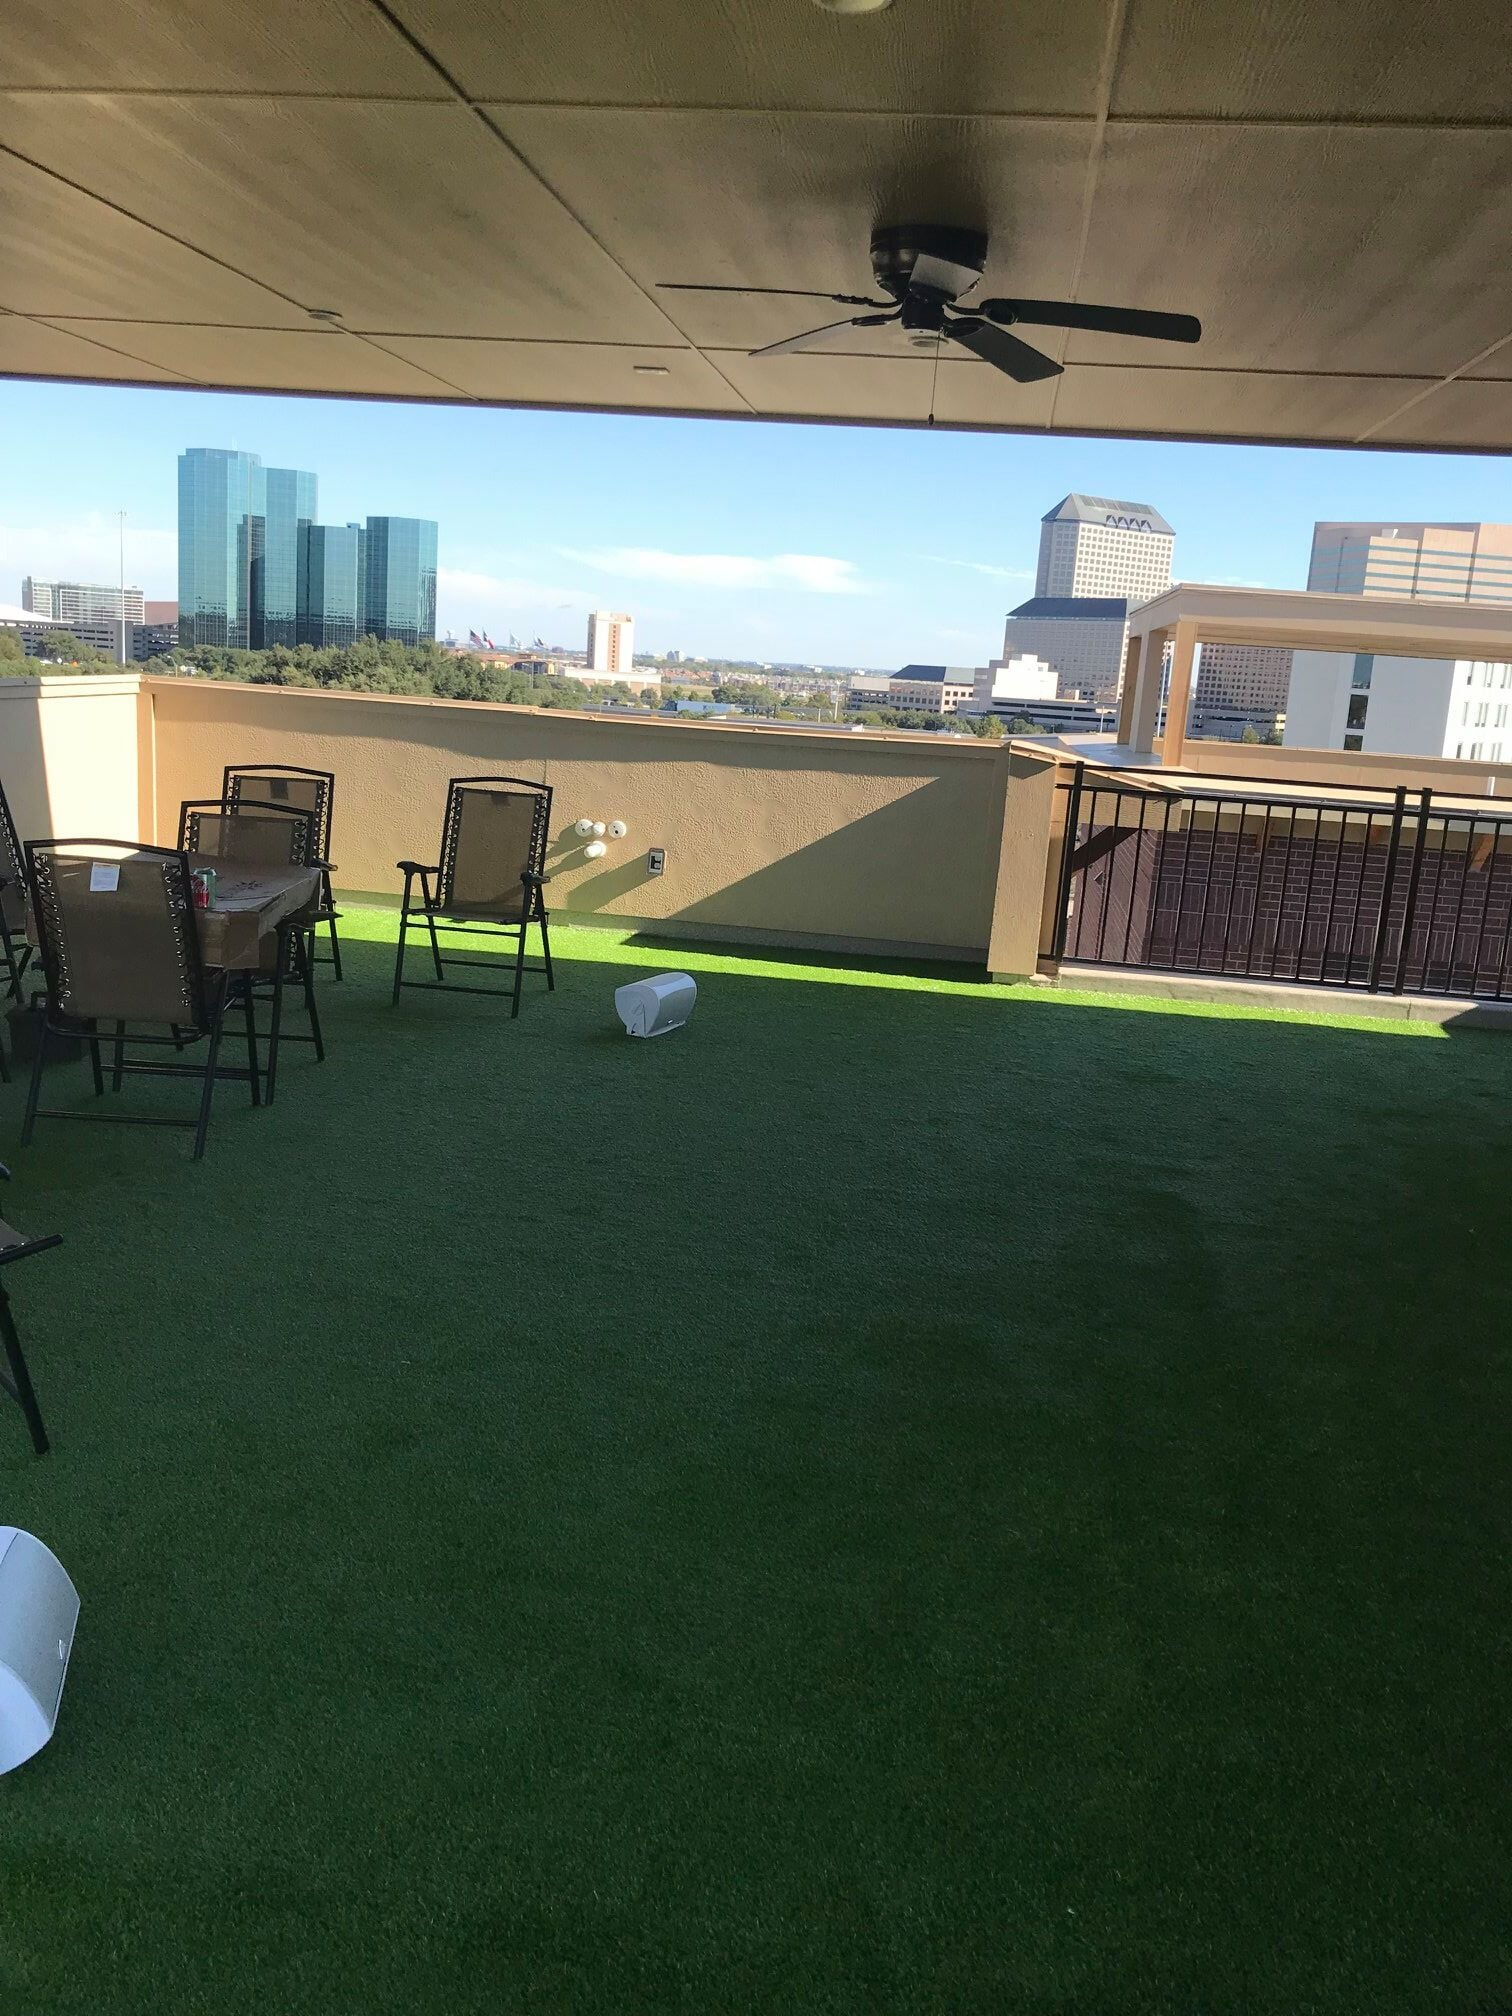 Outdoor flooring from StarFloors in Plano, TX